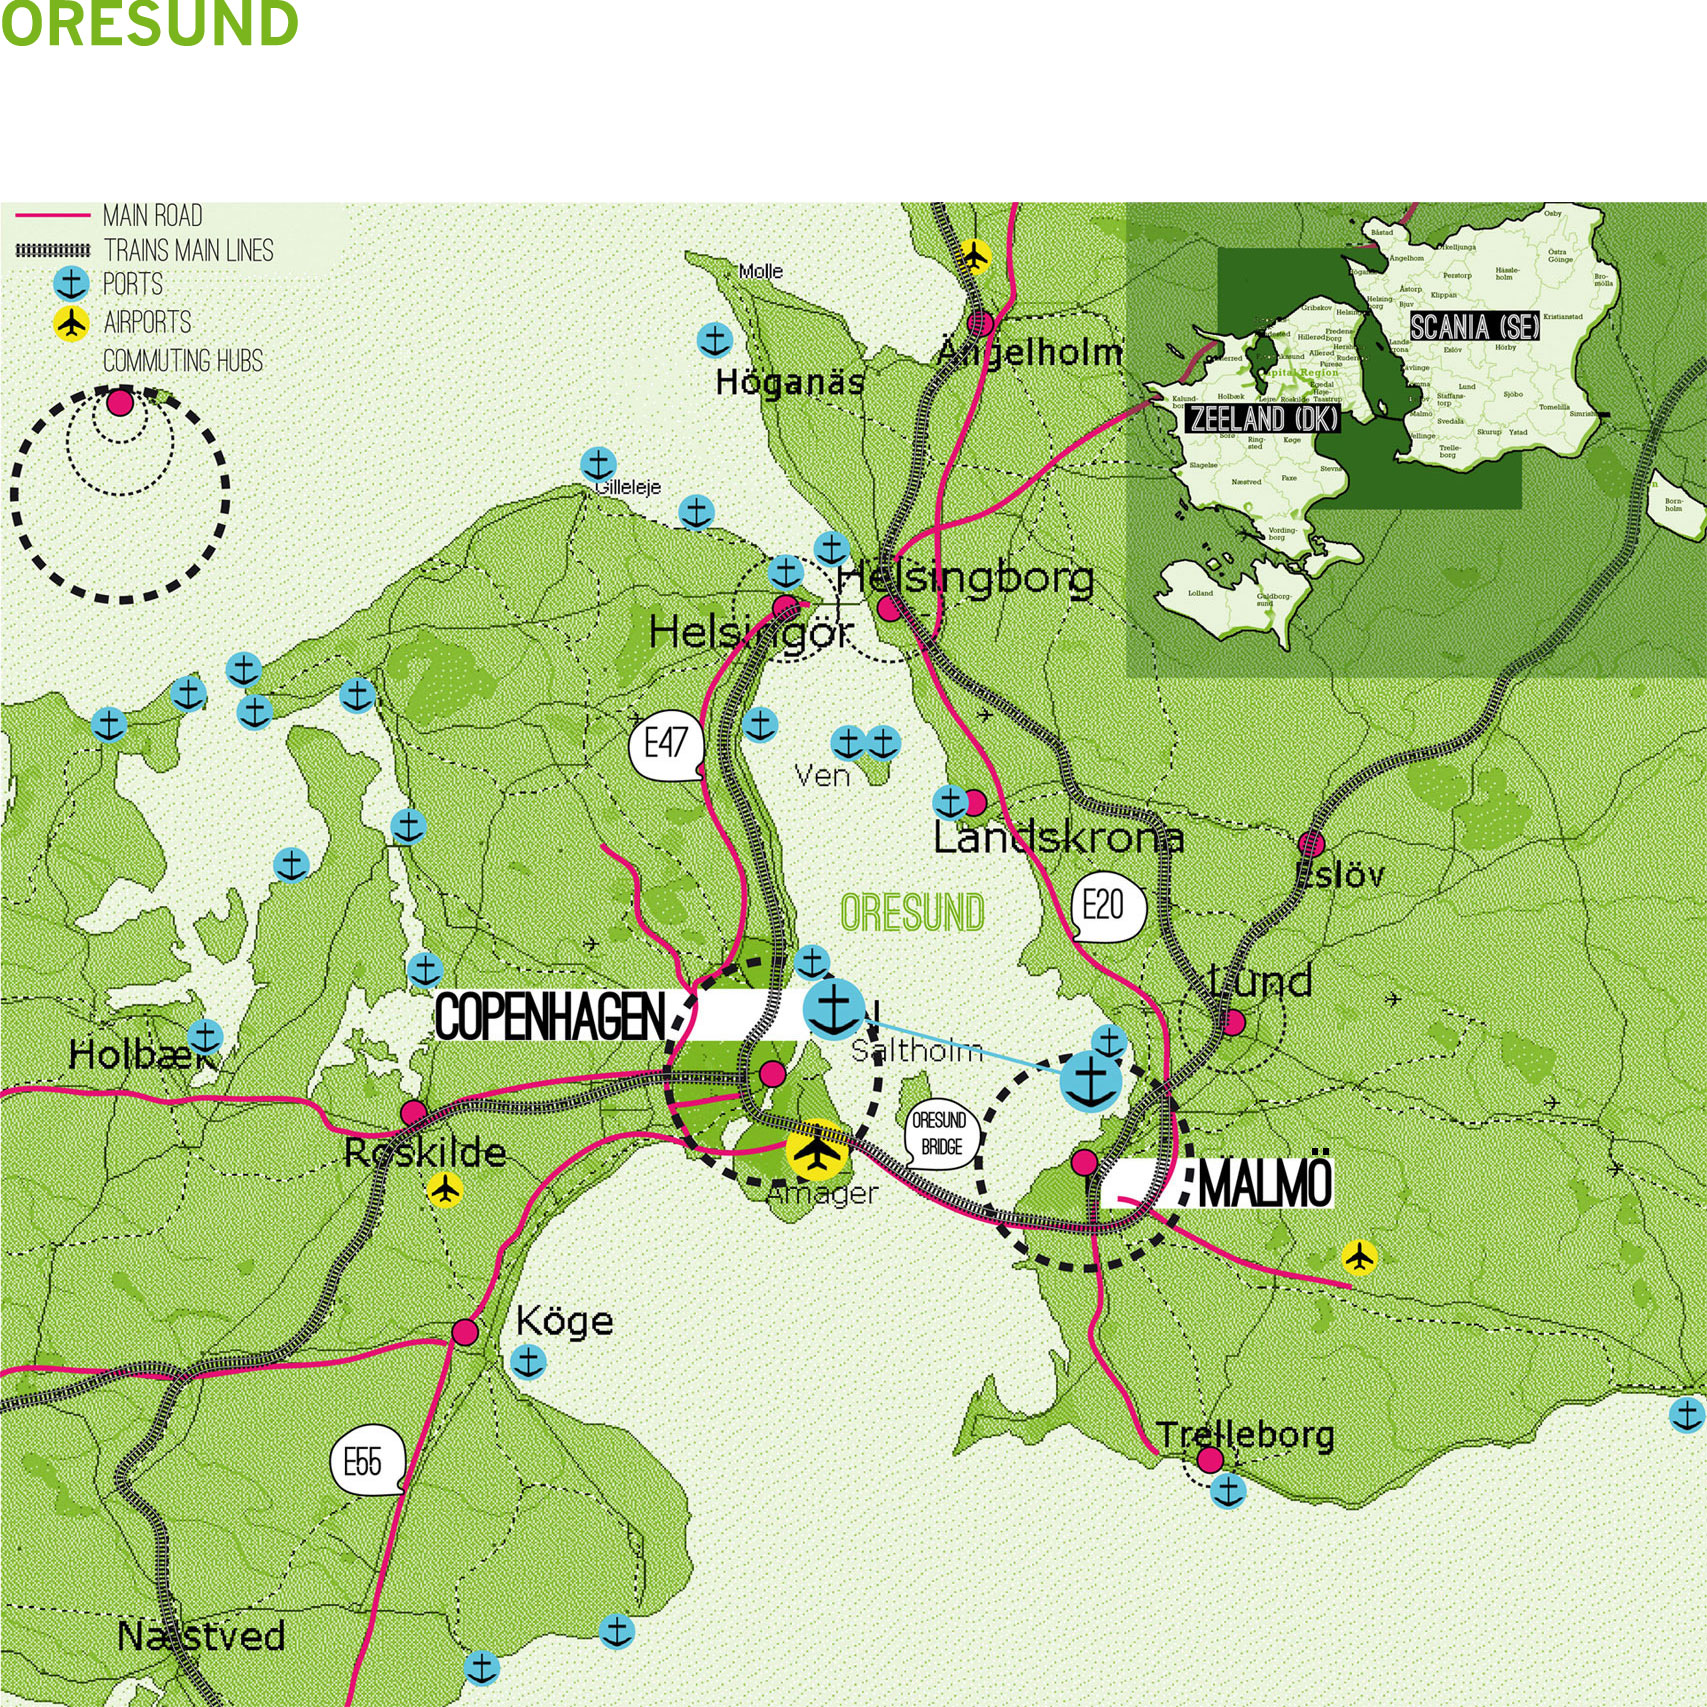 Oresund Case Study - Map